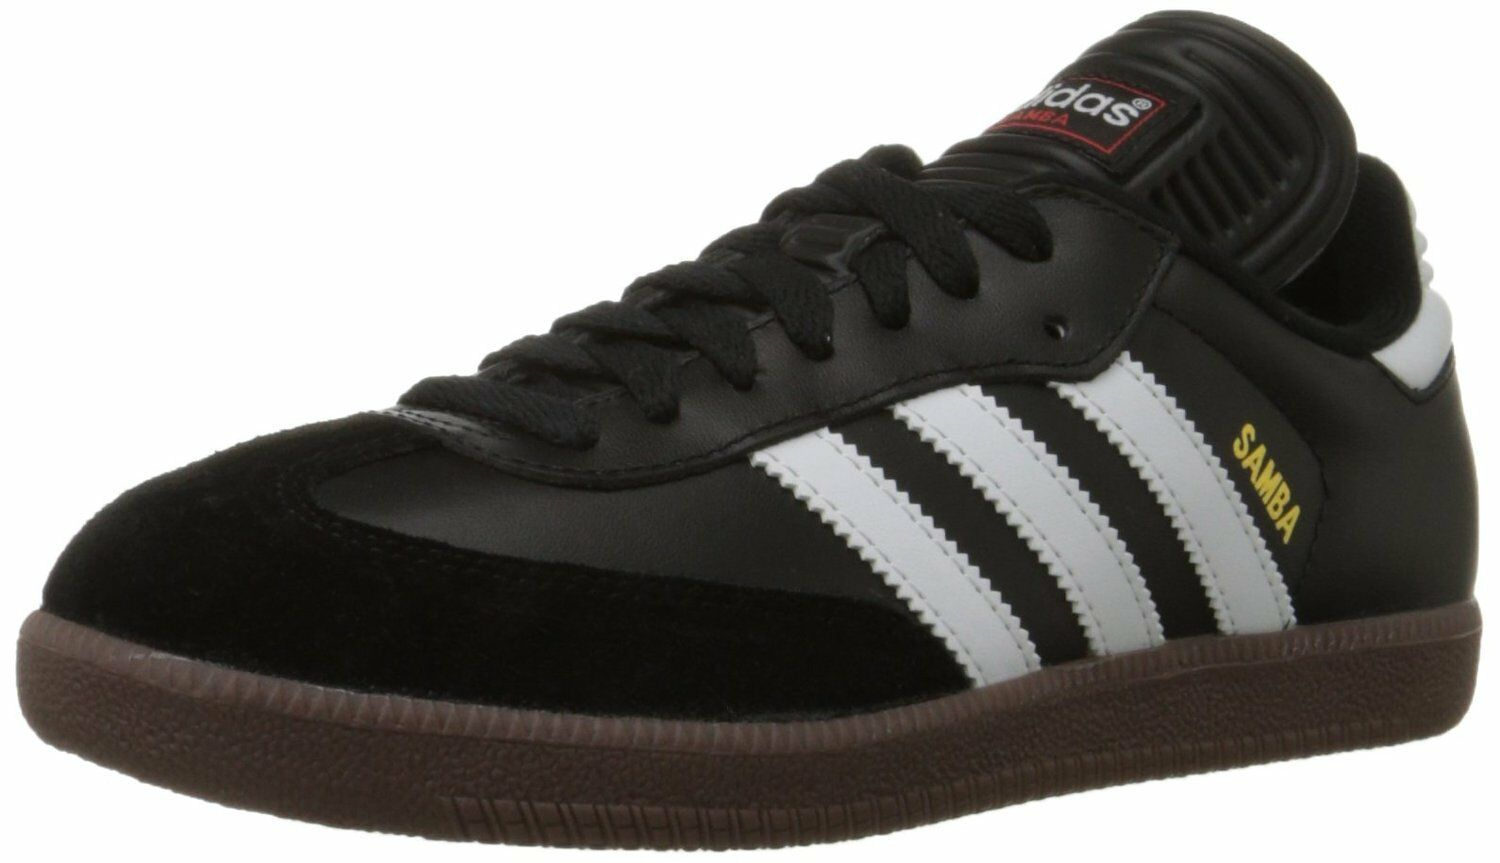 adidas Lace SAMBA CLASSIC Mens Black/Runwht 034563 Lace adidas Up Indoor Soccer Shoes 36413a